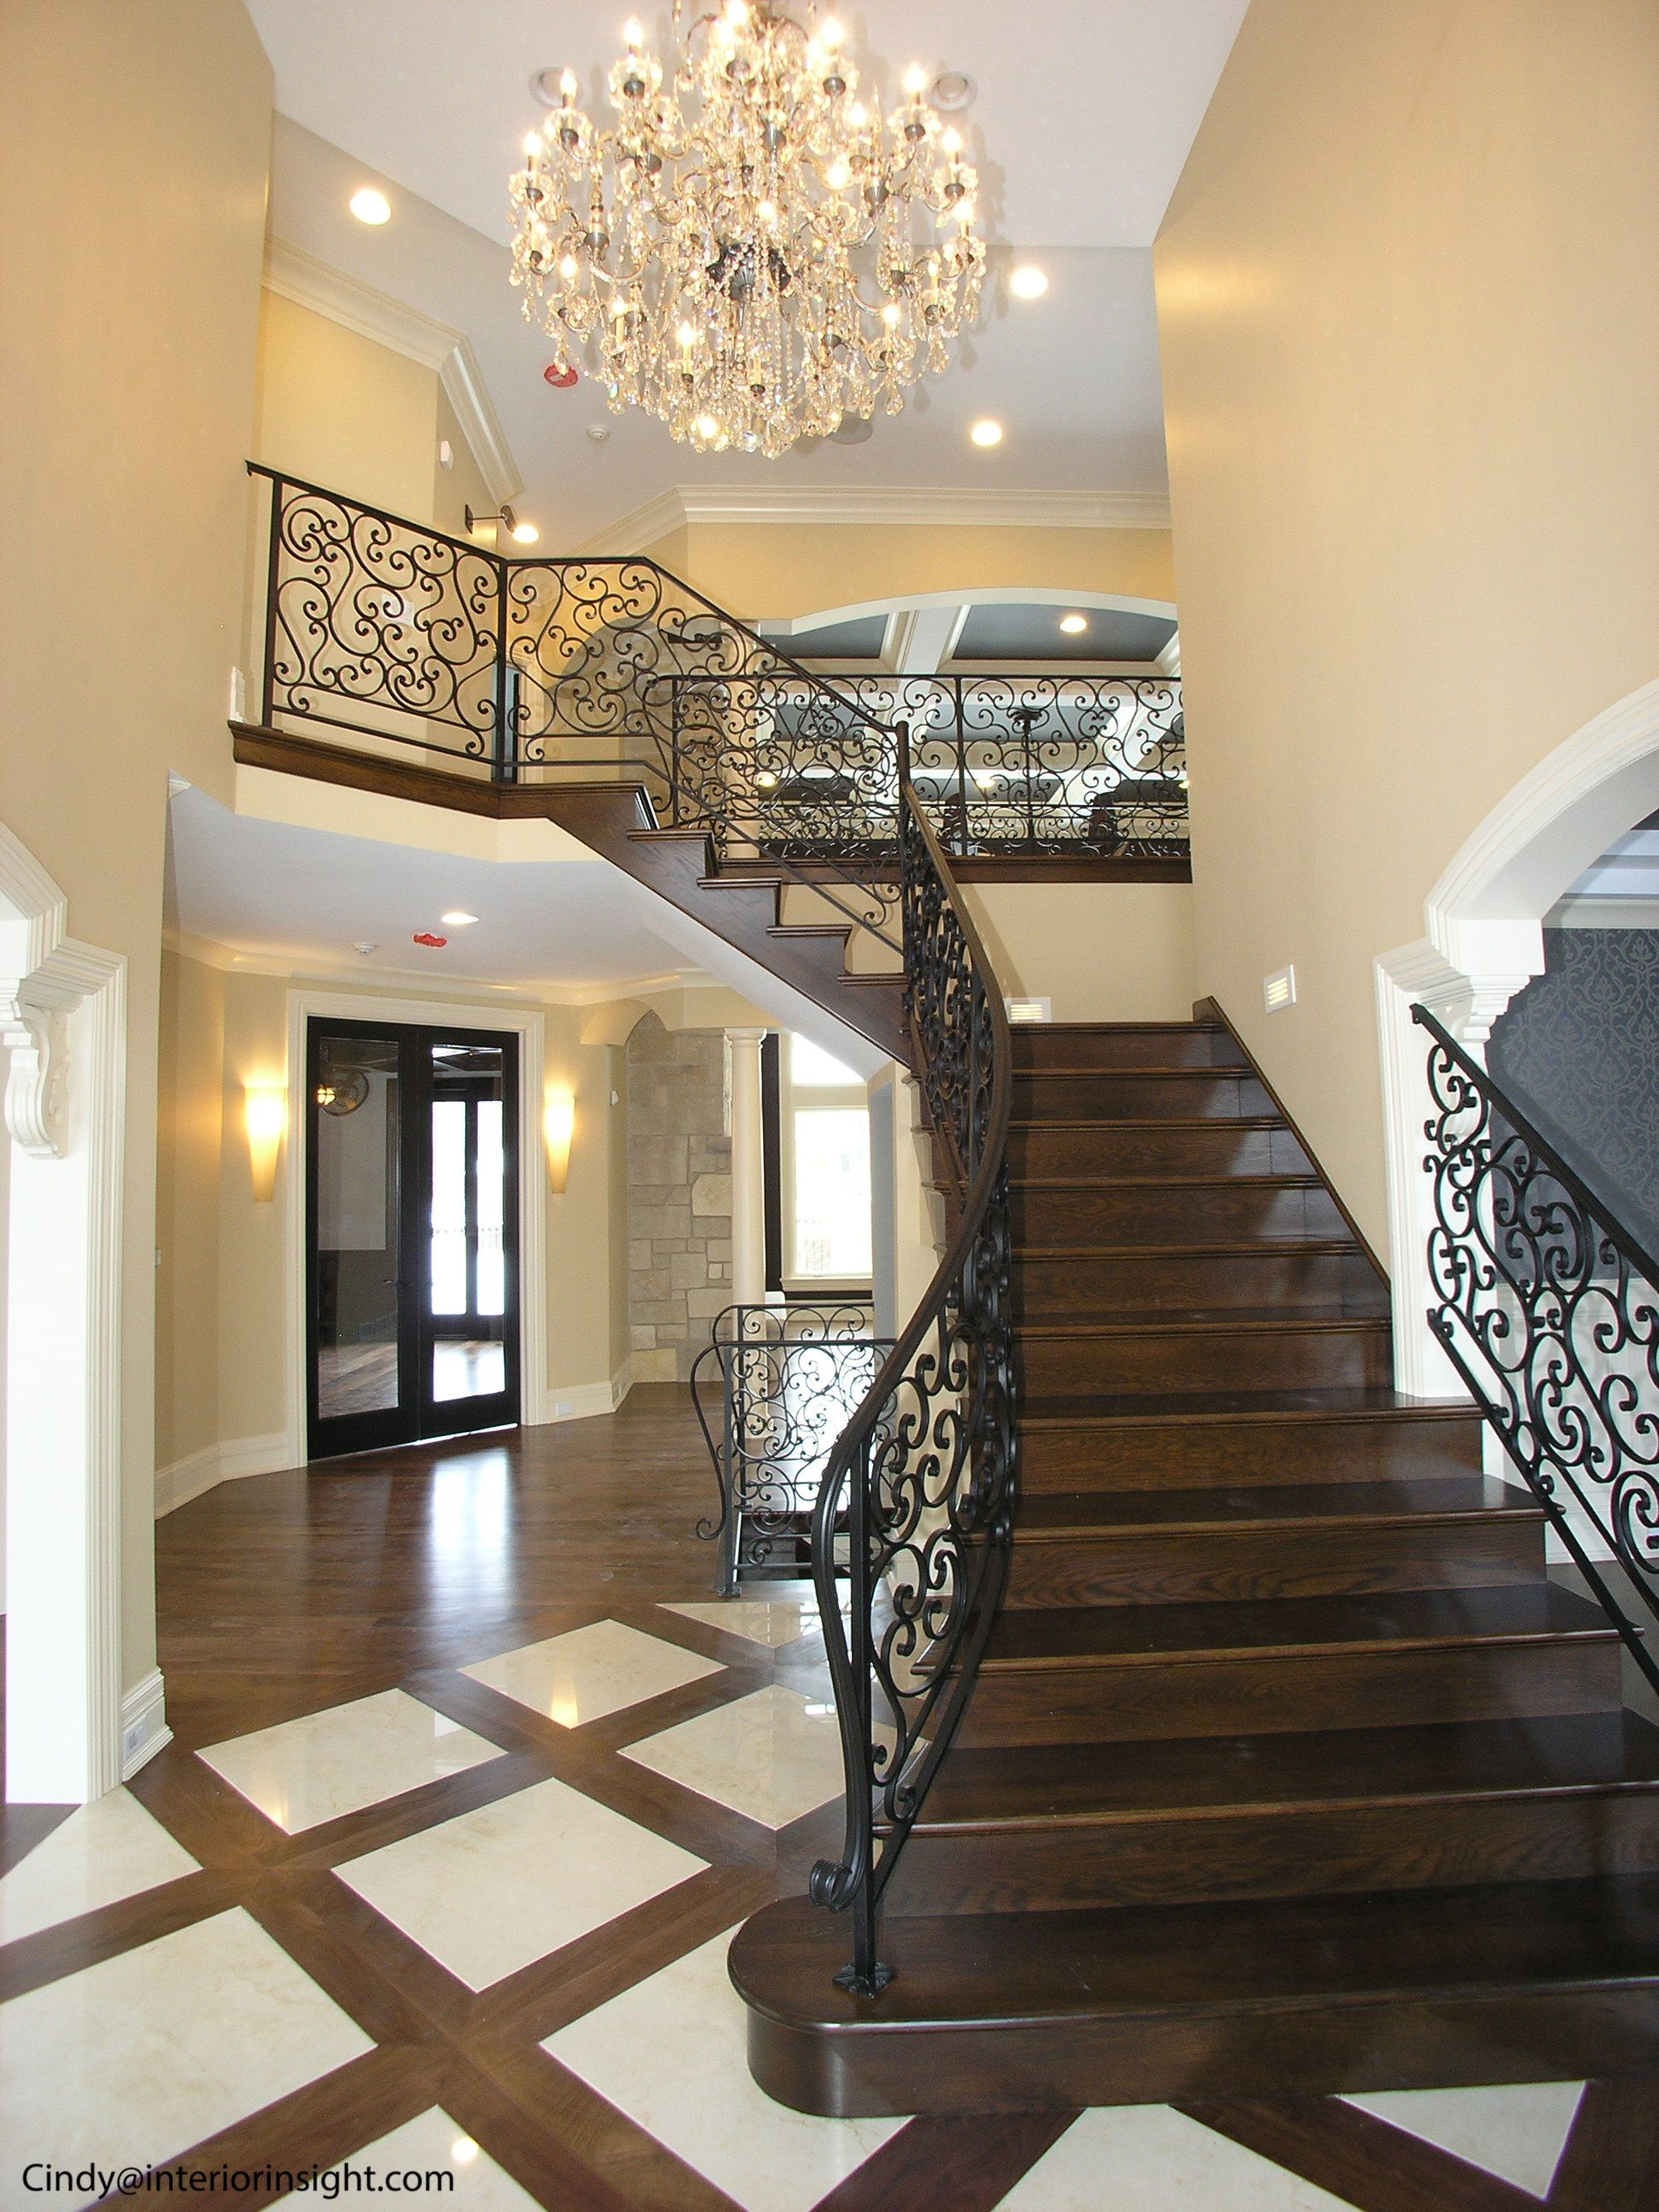 Two Story Foyer Or Not : Story foyer with curved iron railings and wooden